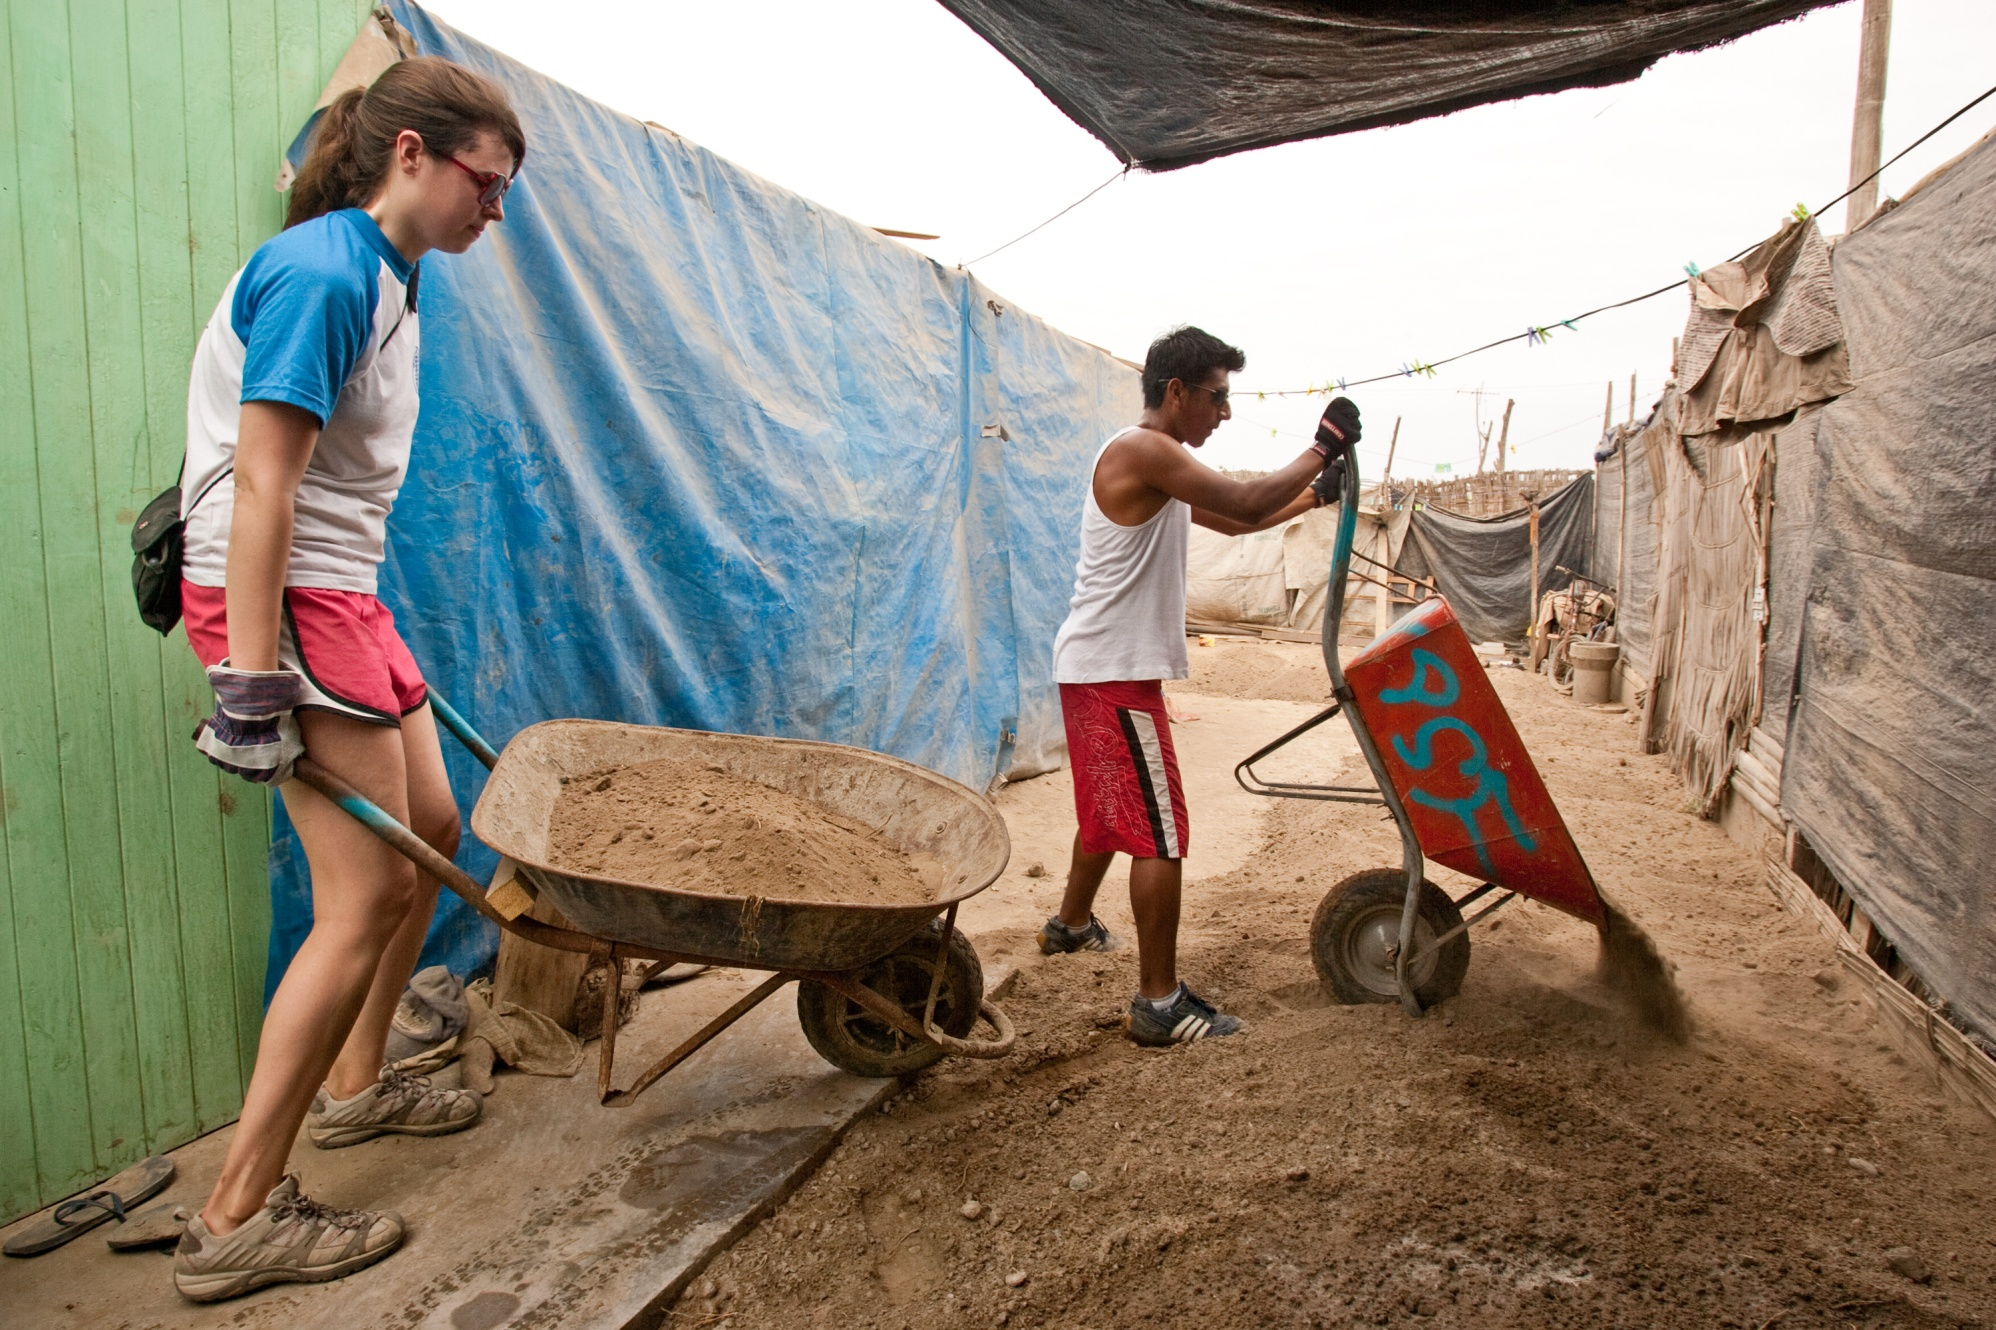 Northwestern University Rotaractor Lauren Coffaro (left) and Pisco Rotaractor Jassu Zamudio dump sand that will be used to build new latrines in El Molino, Peru. Members of the Rotaract Club of Northwestern University, Illinois, USA, are volunteering with Pisco Sin Fronteras, a local organization that provides sustainable disaster relief and rebuilds local communities, during a spring break service trip to Pisco, Peru.